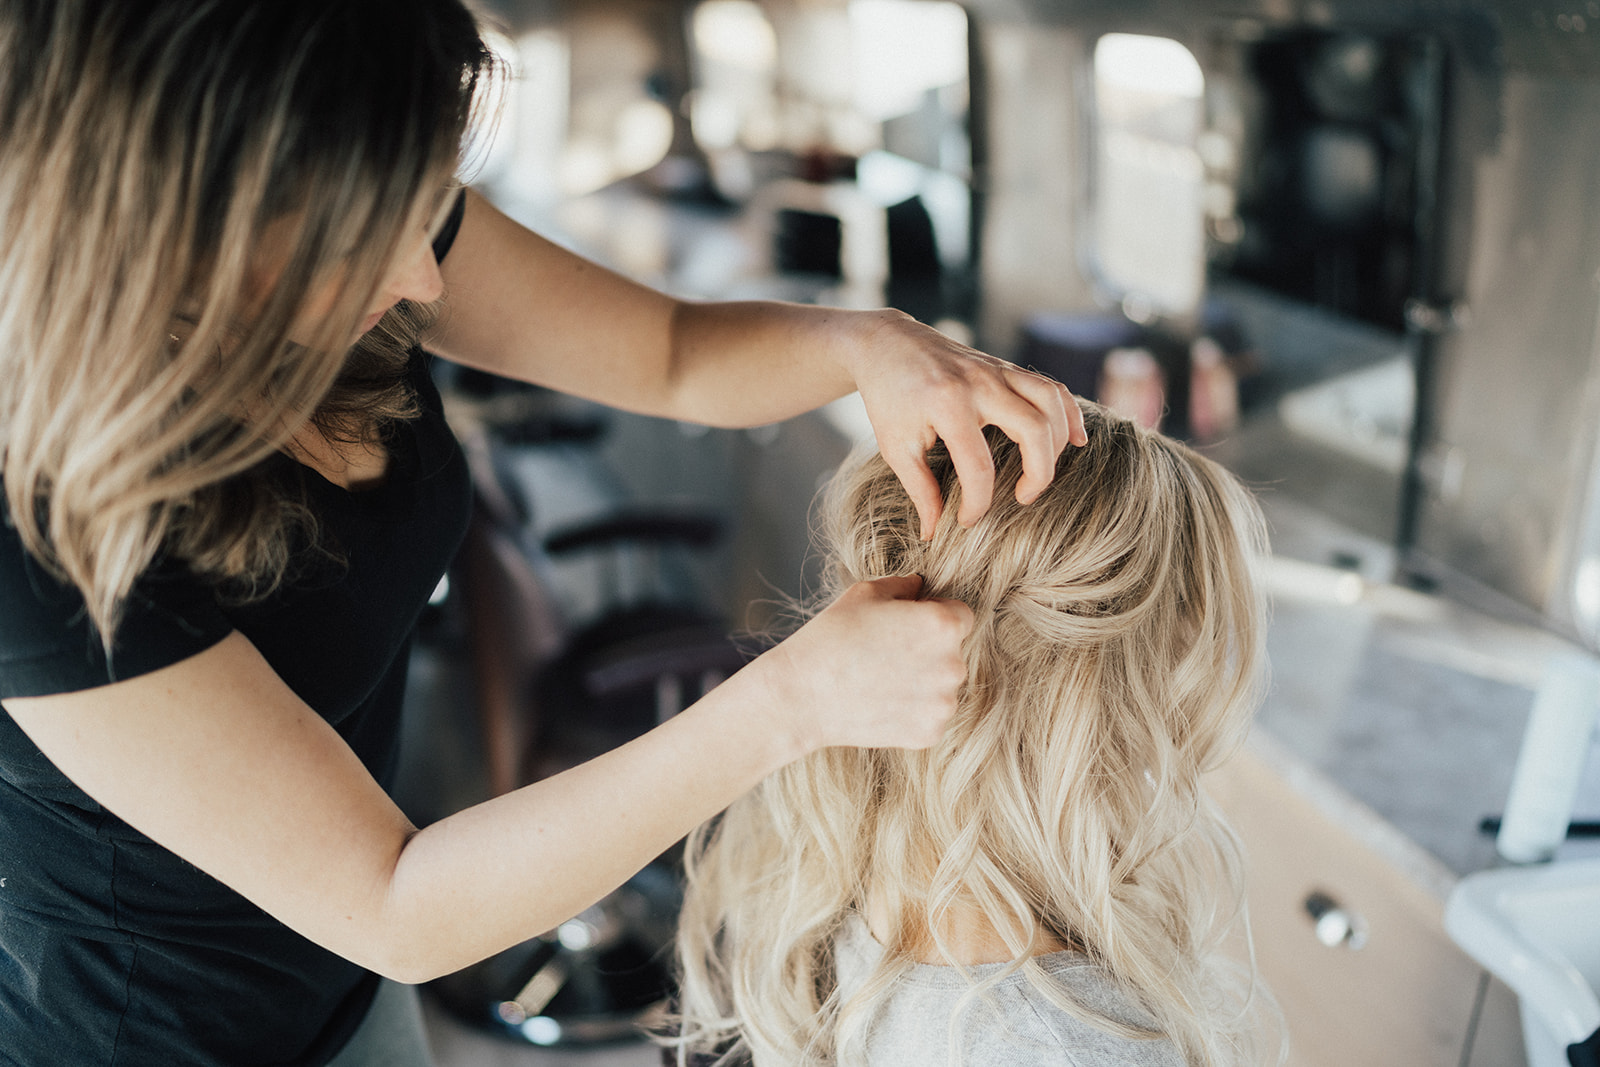 """Crissy dyed and styled my hair for my wedding day leaving me feeling the most beautiful I ever had. She is extremely knowledgeable, professional, and a joy to be around during the process. I highly recommend her and will never let someone else cut/ color my hair again!"" - -E. Hart"